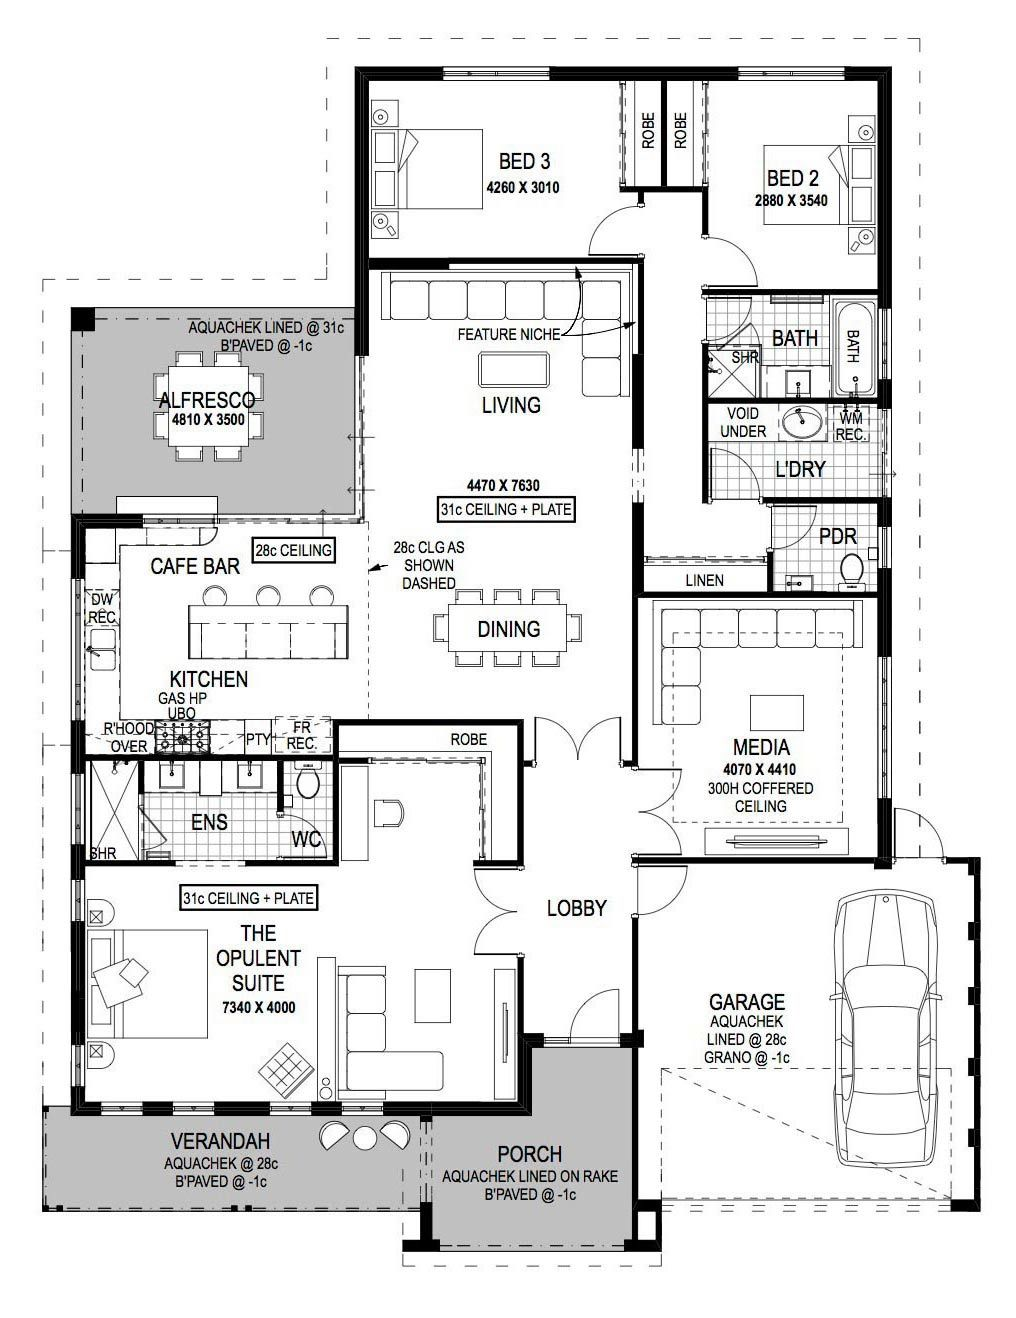 Luxury Home Builders Perth Wa Luxury Homes Designs House Plans Australia Luxury House Designs Luxury House Plans